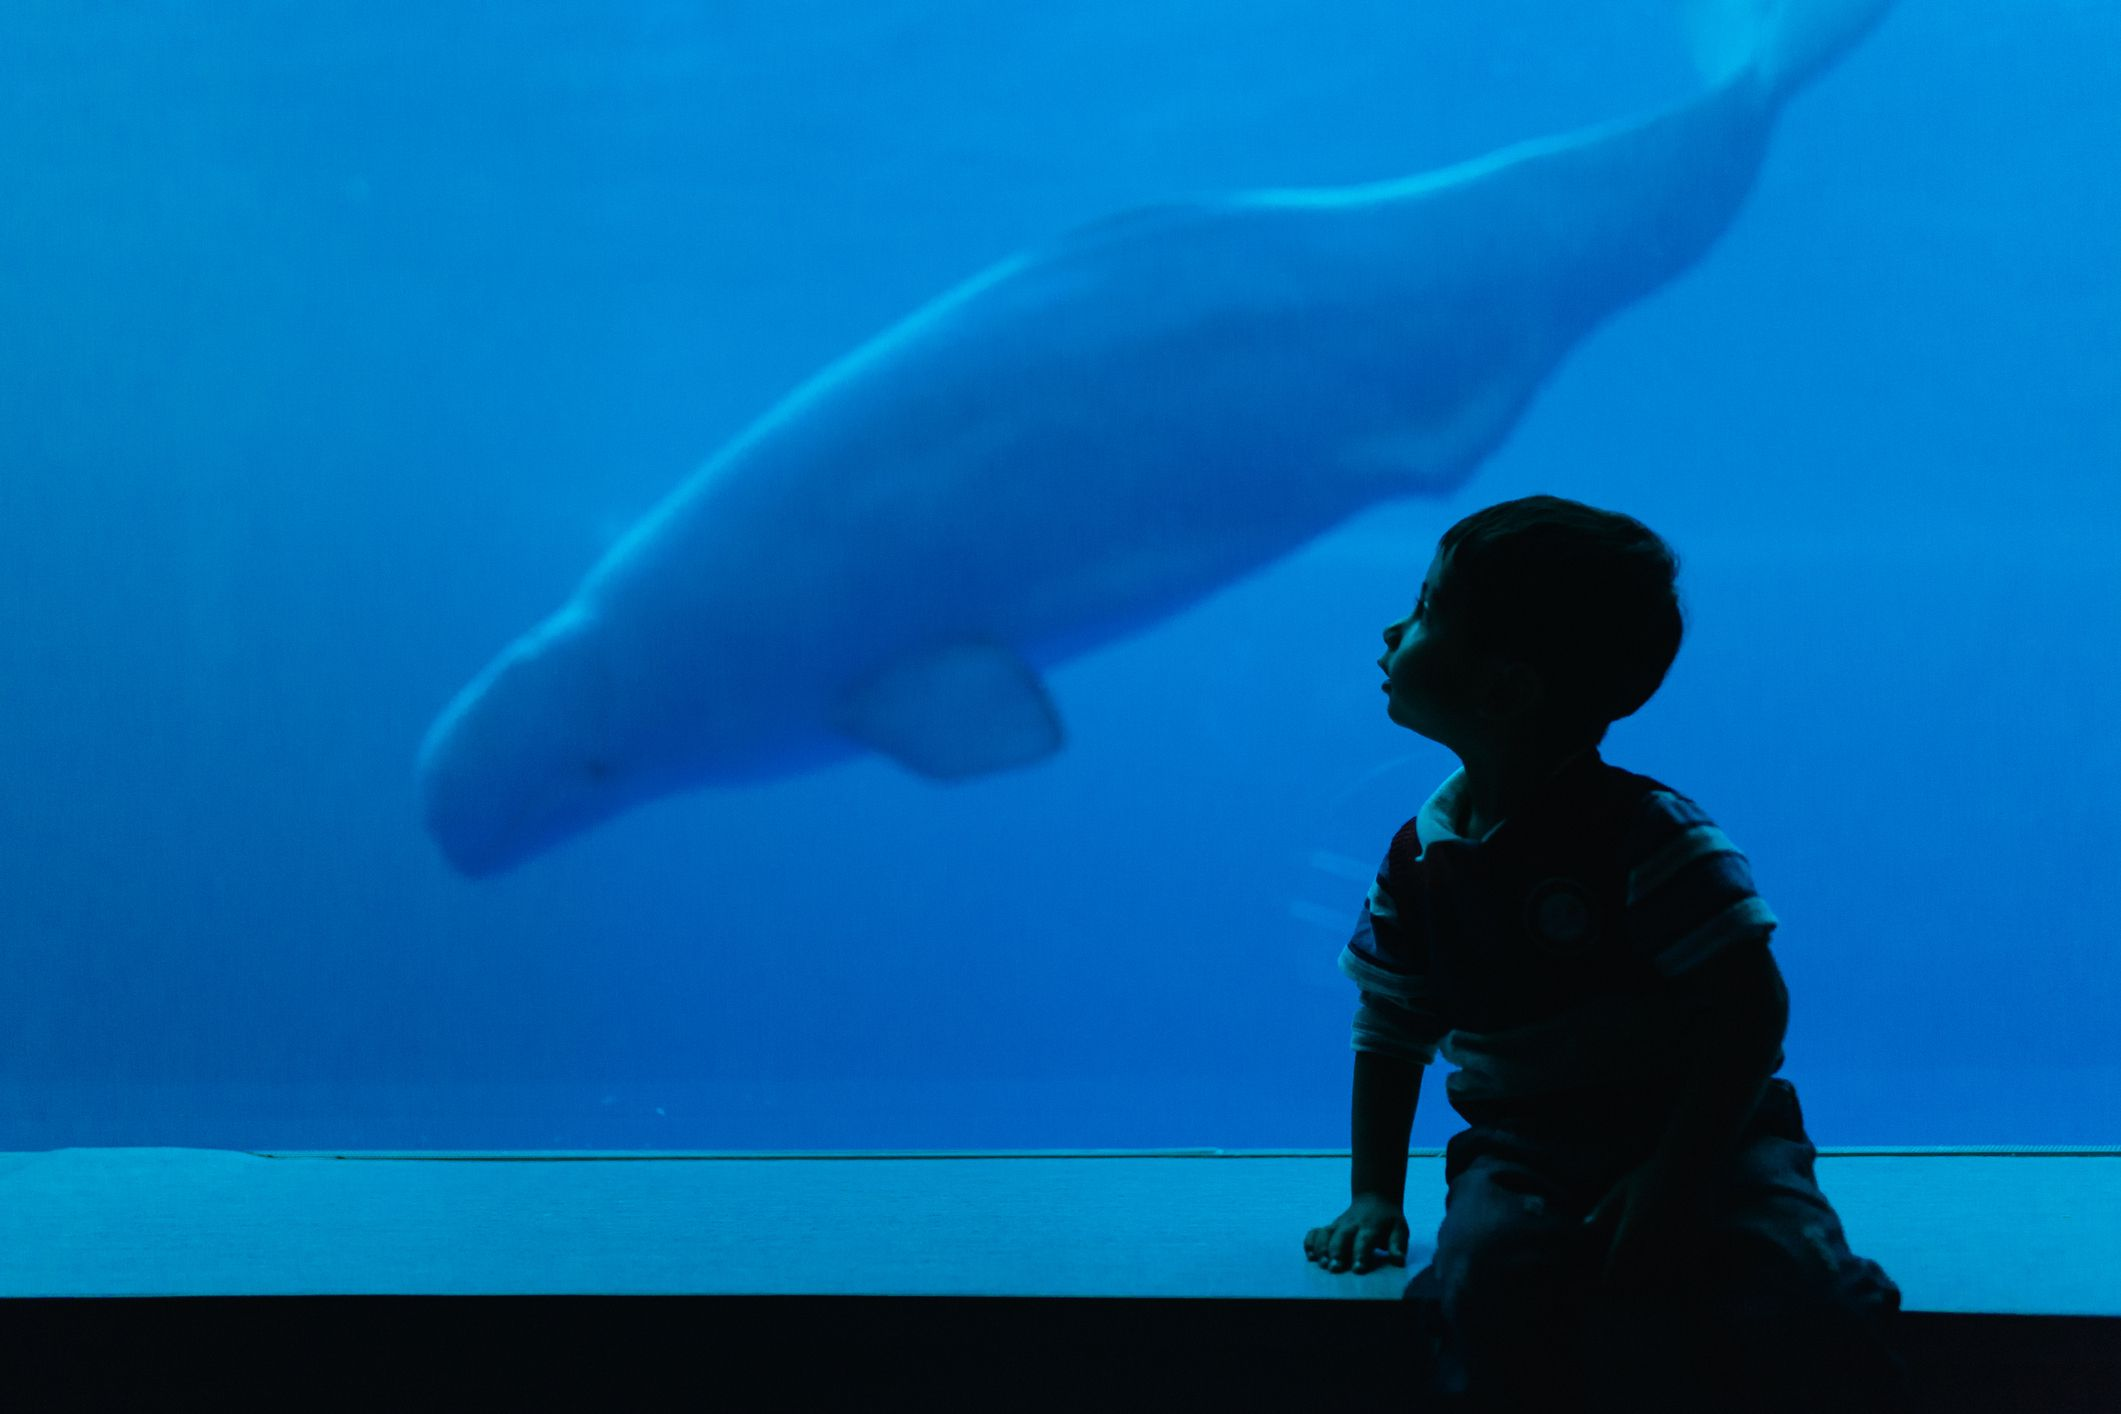 Silhouette of a child looking at dolphin in aquarium